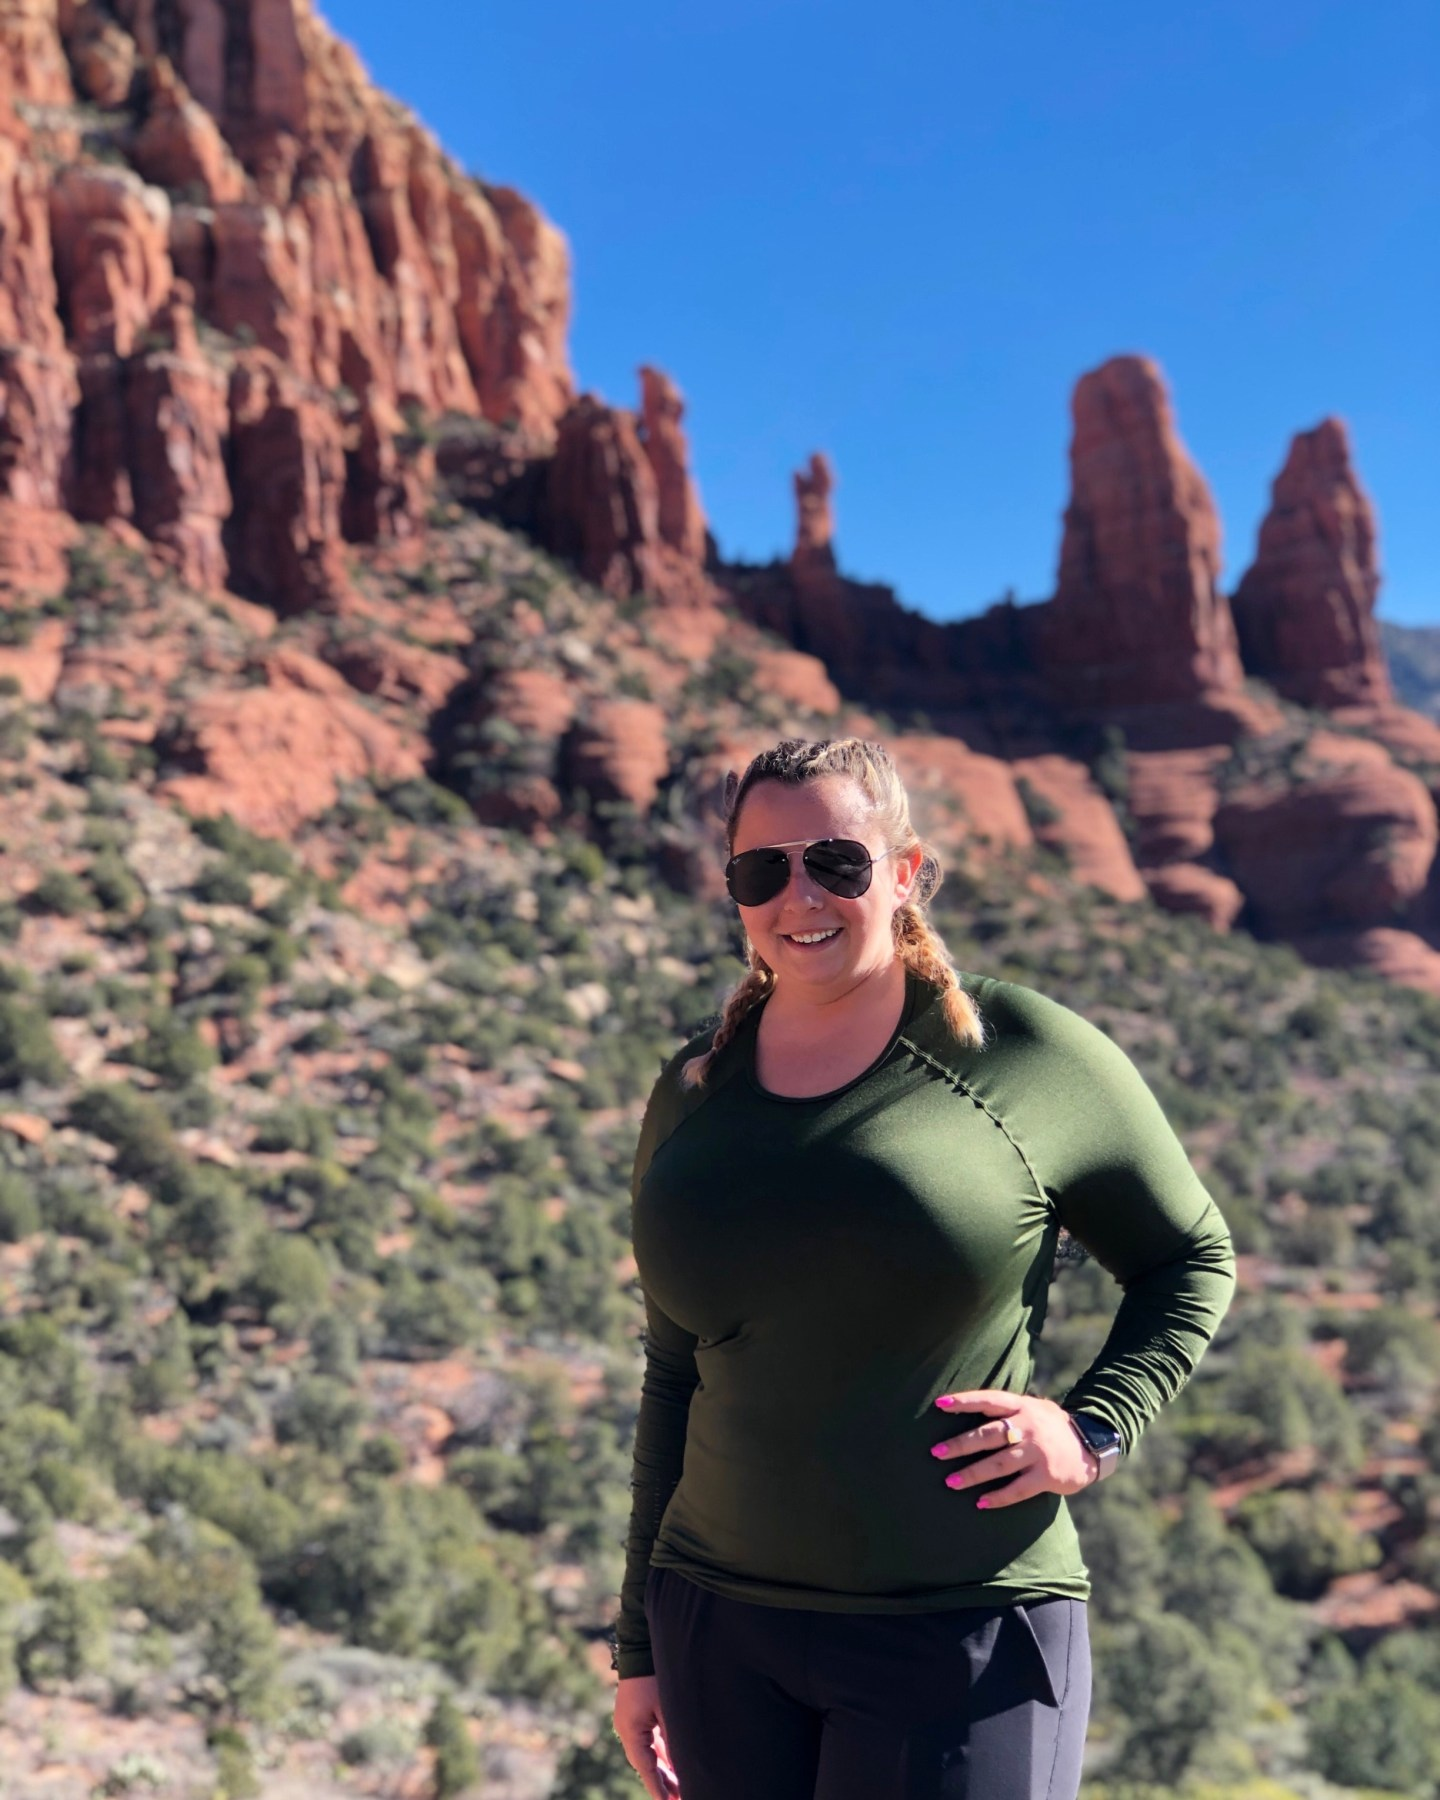 Jet-setting Spirit with a view of Sedona